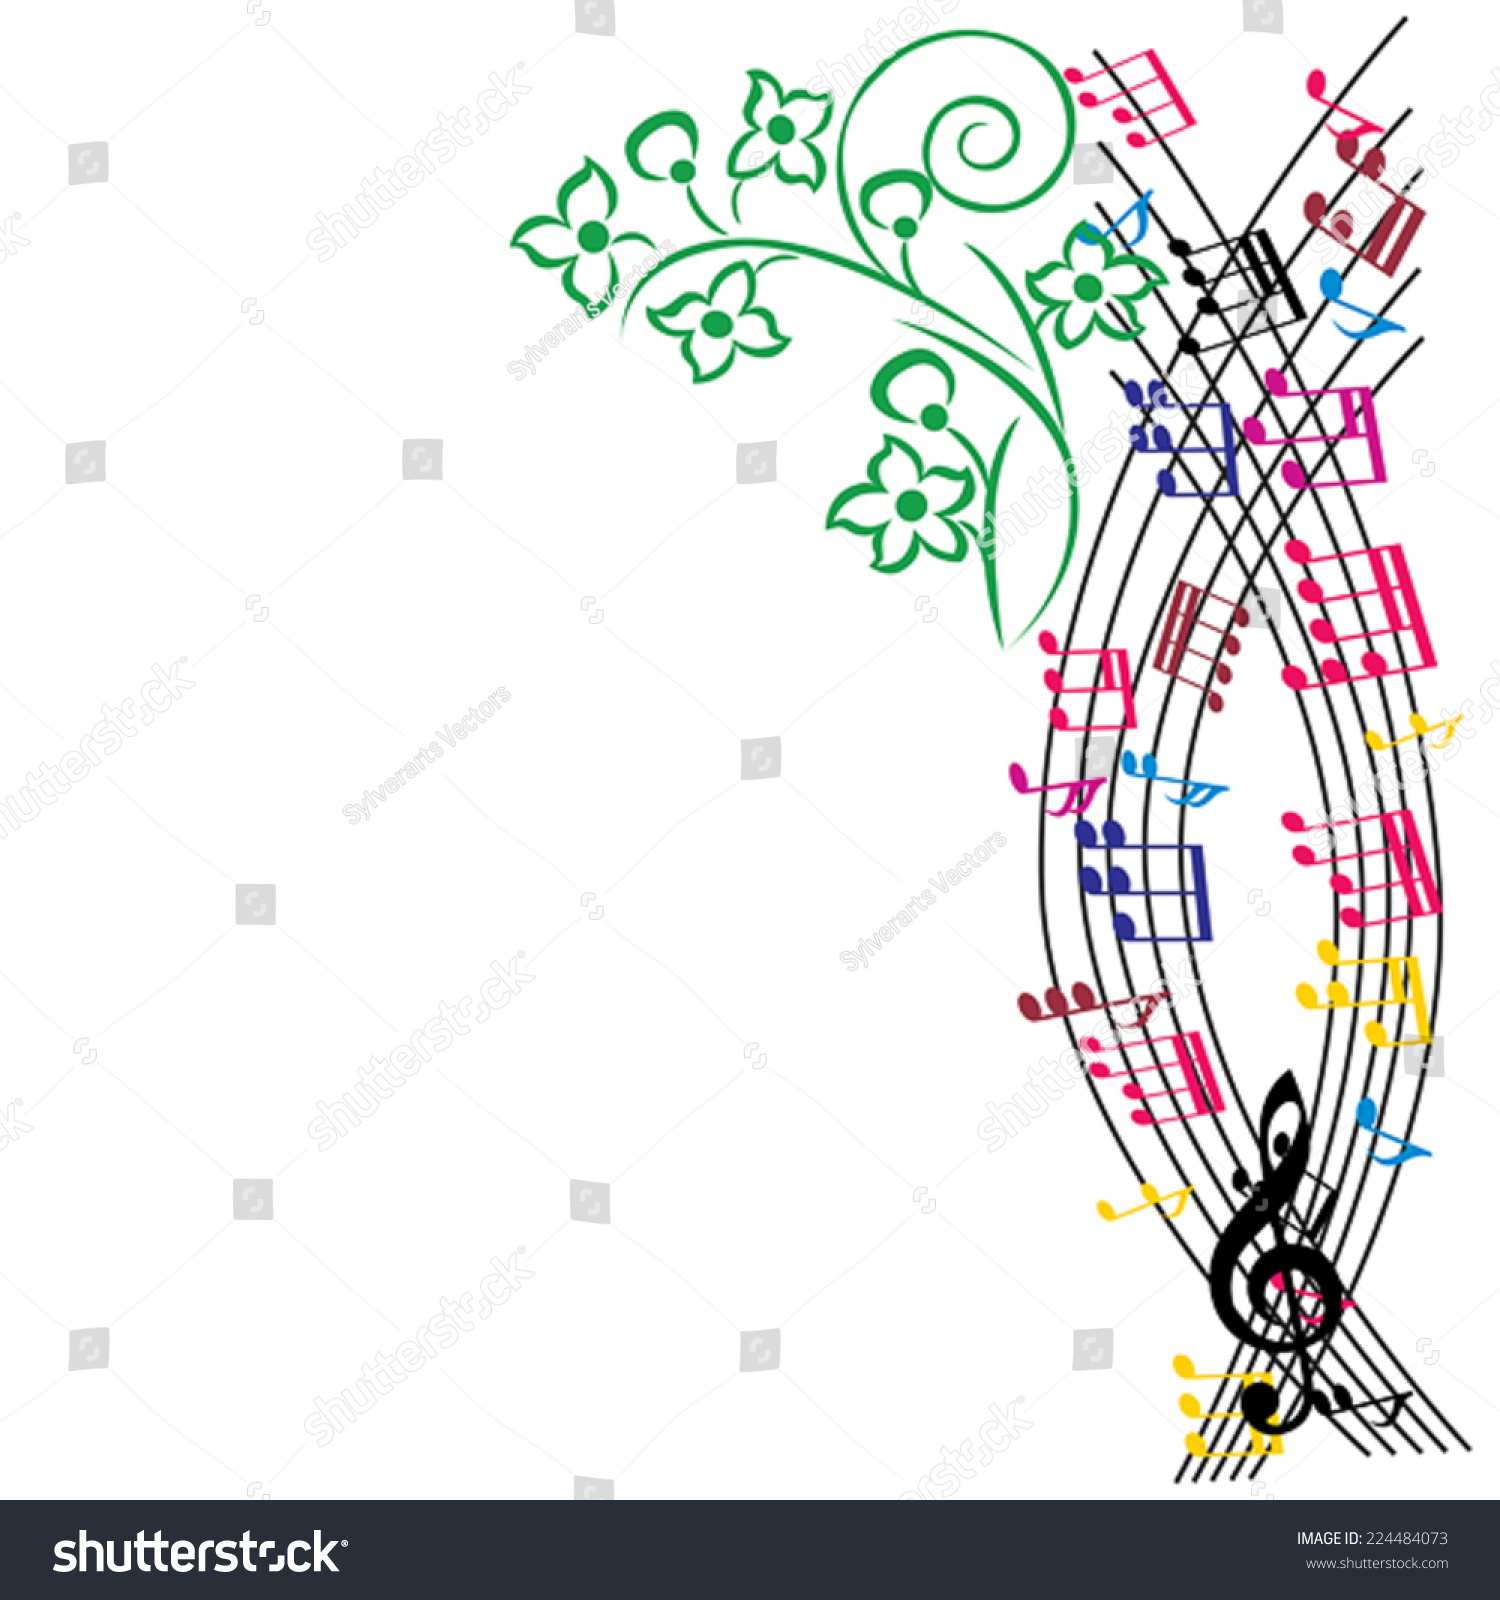 music notes background stylish musical theme stock vector hd rh shutterstock com Abstract Music Notes Background Colorful Music Notes Background